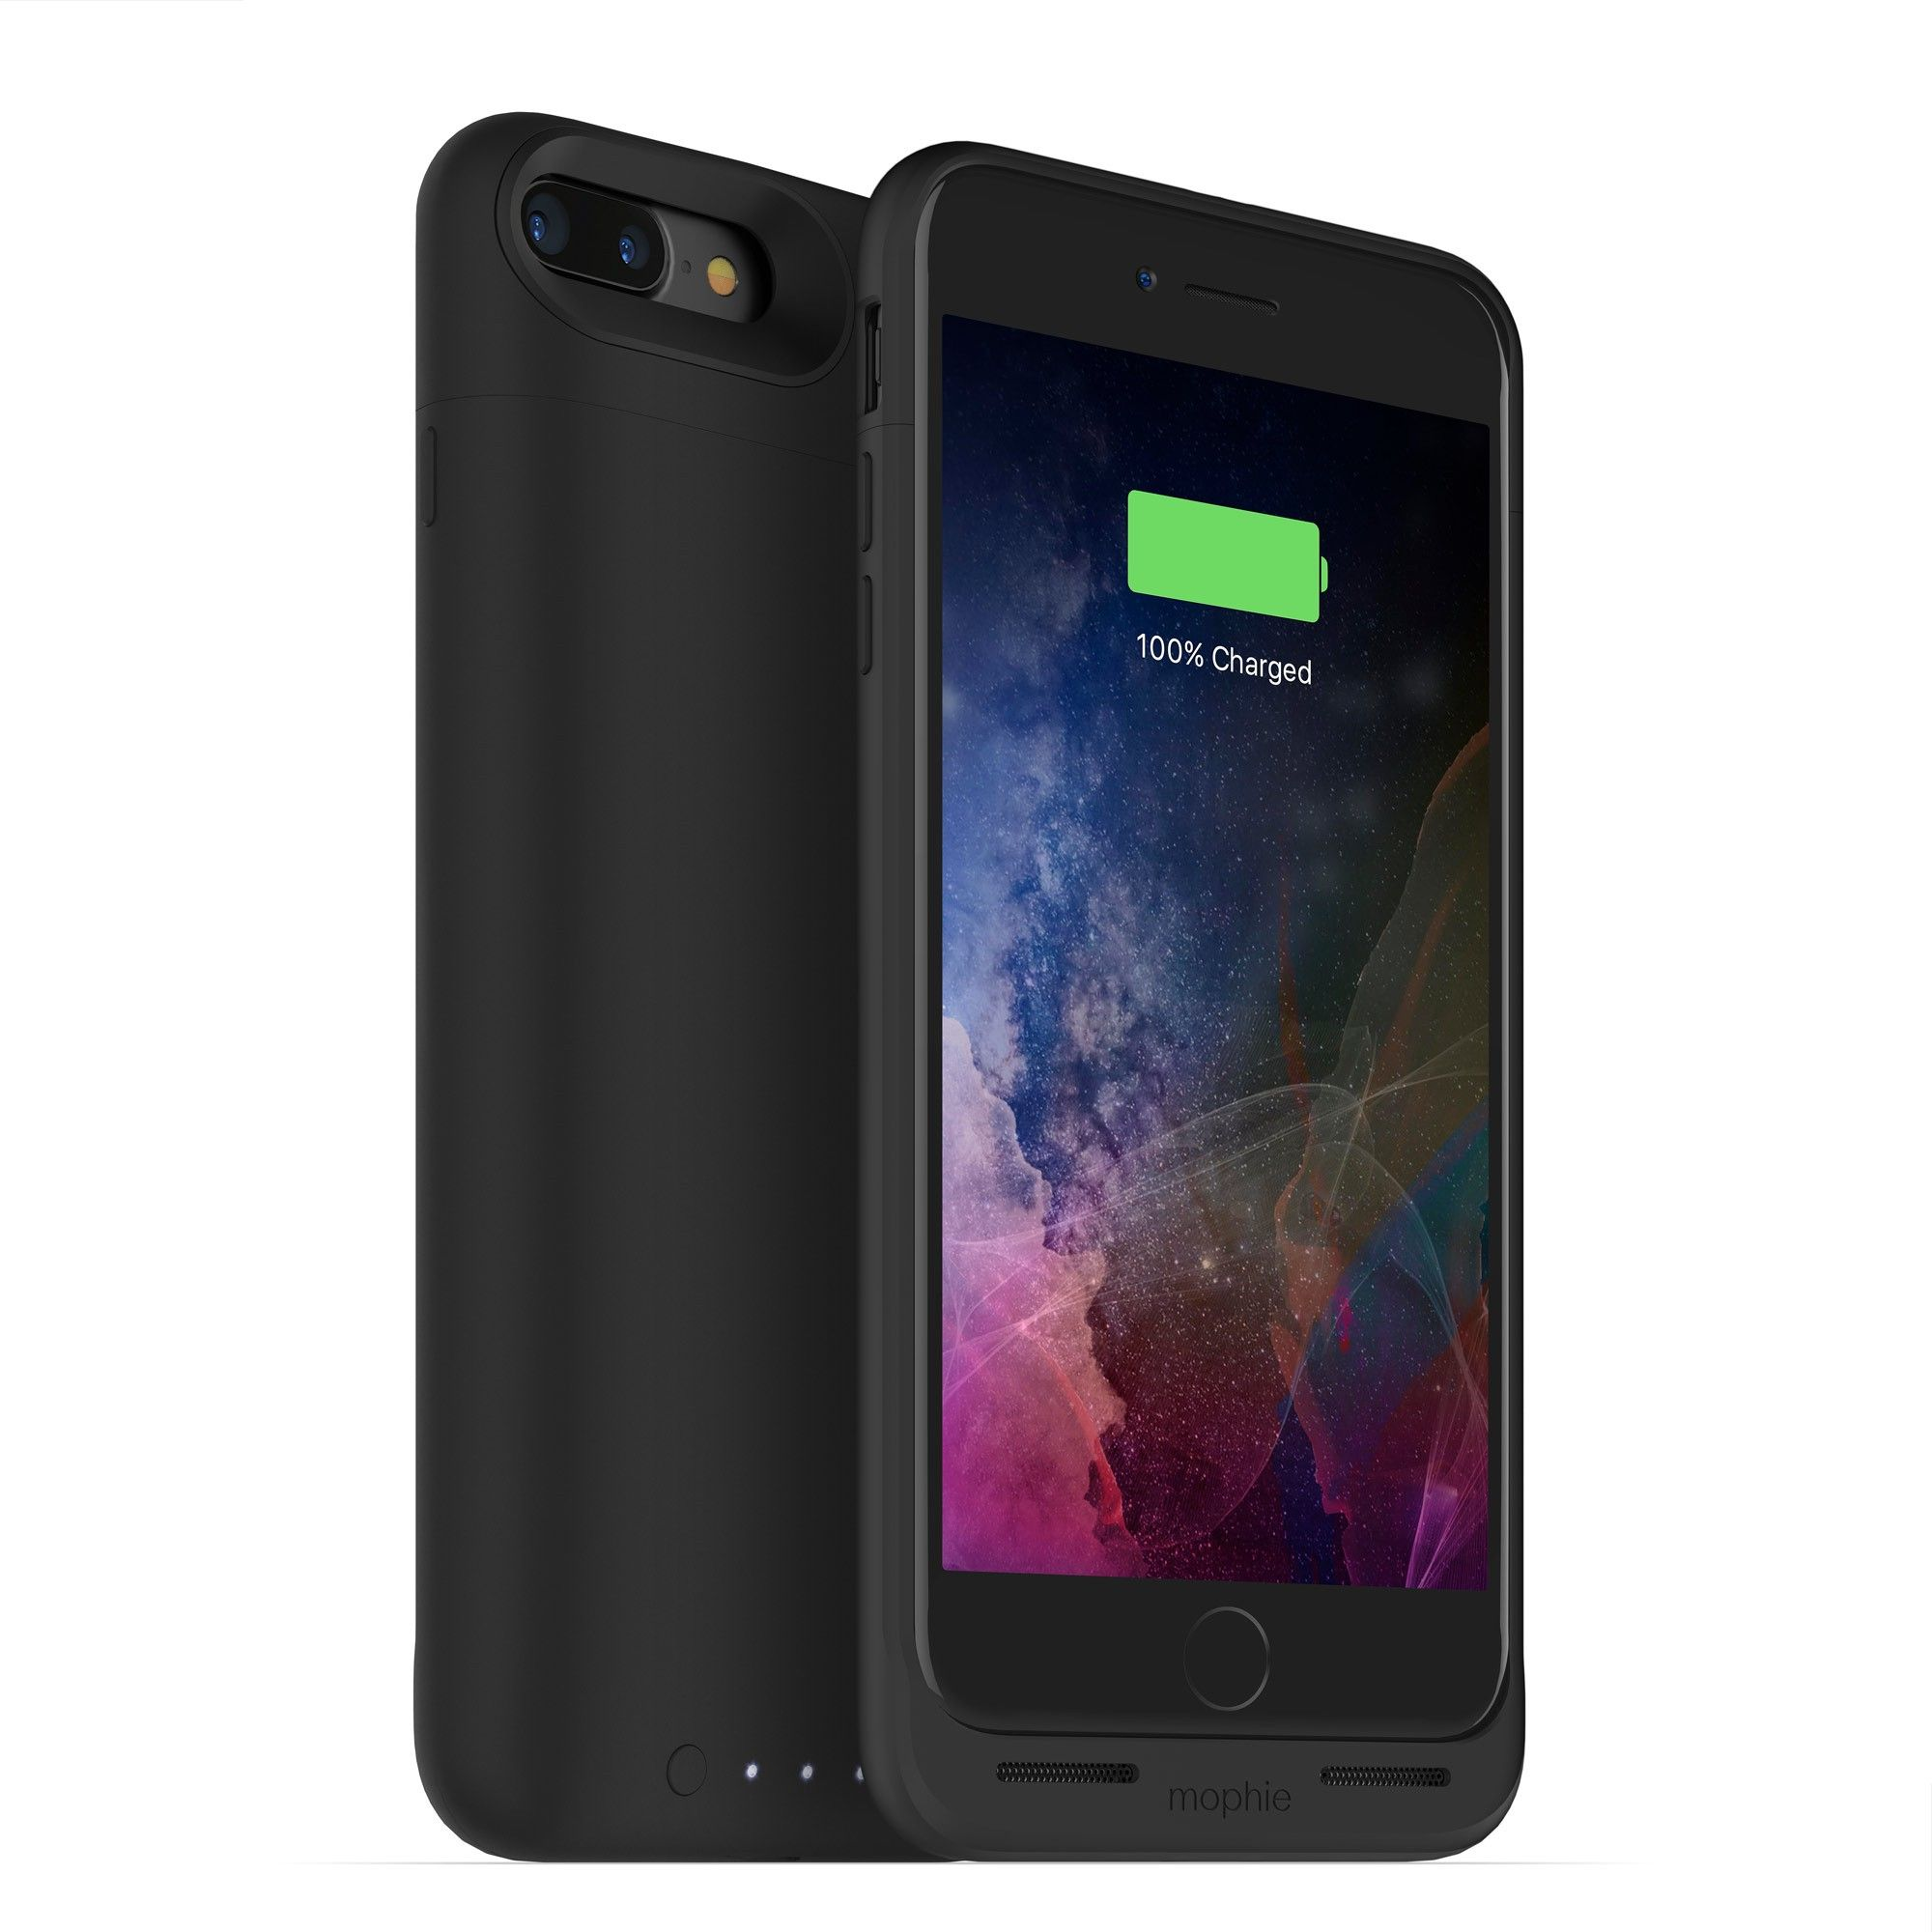 fed366fe773 mophie juice pack air protective battery case with wireless charging  compatible with iPhone 7 Plus and magnetic charge force accessories